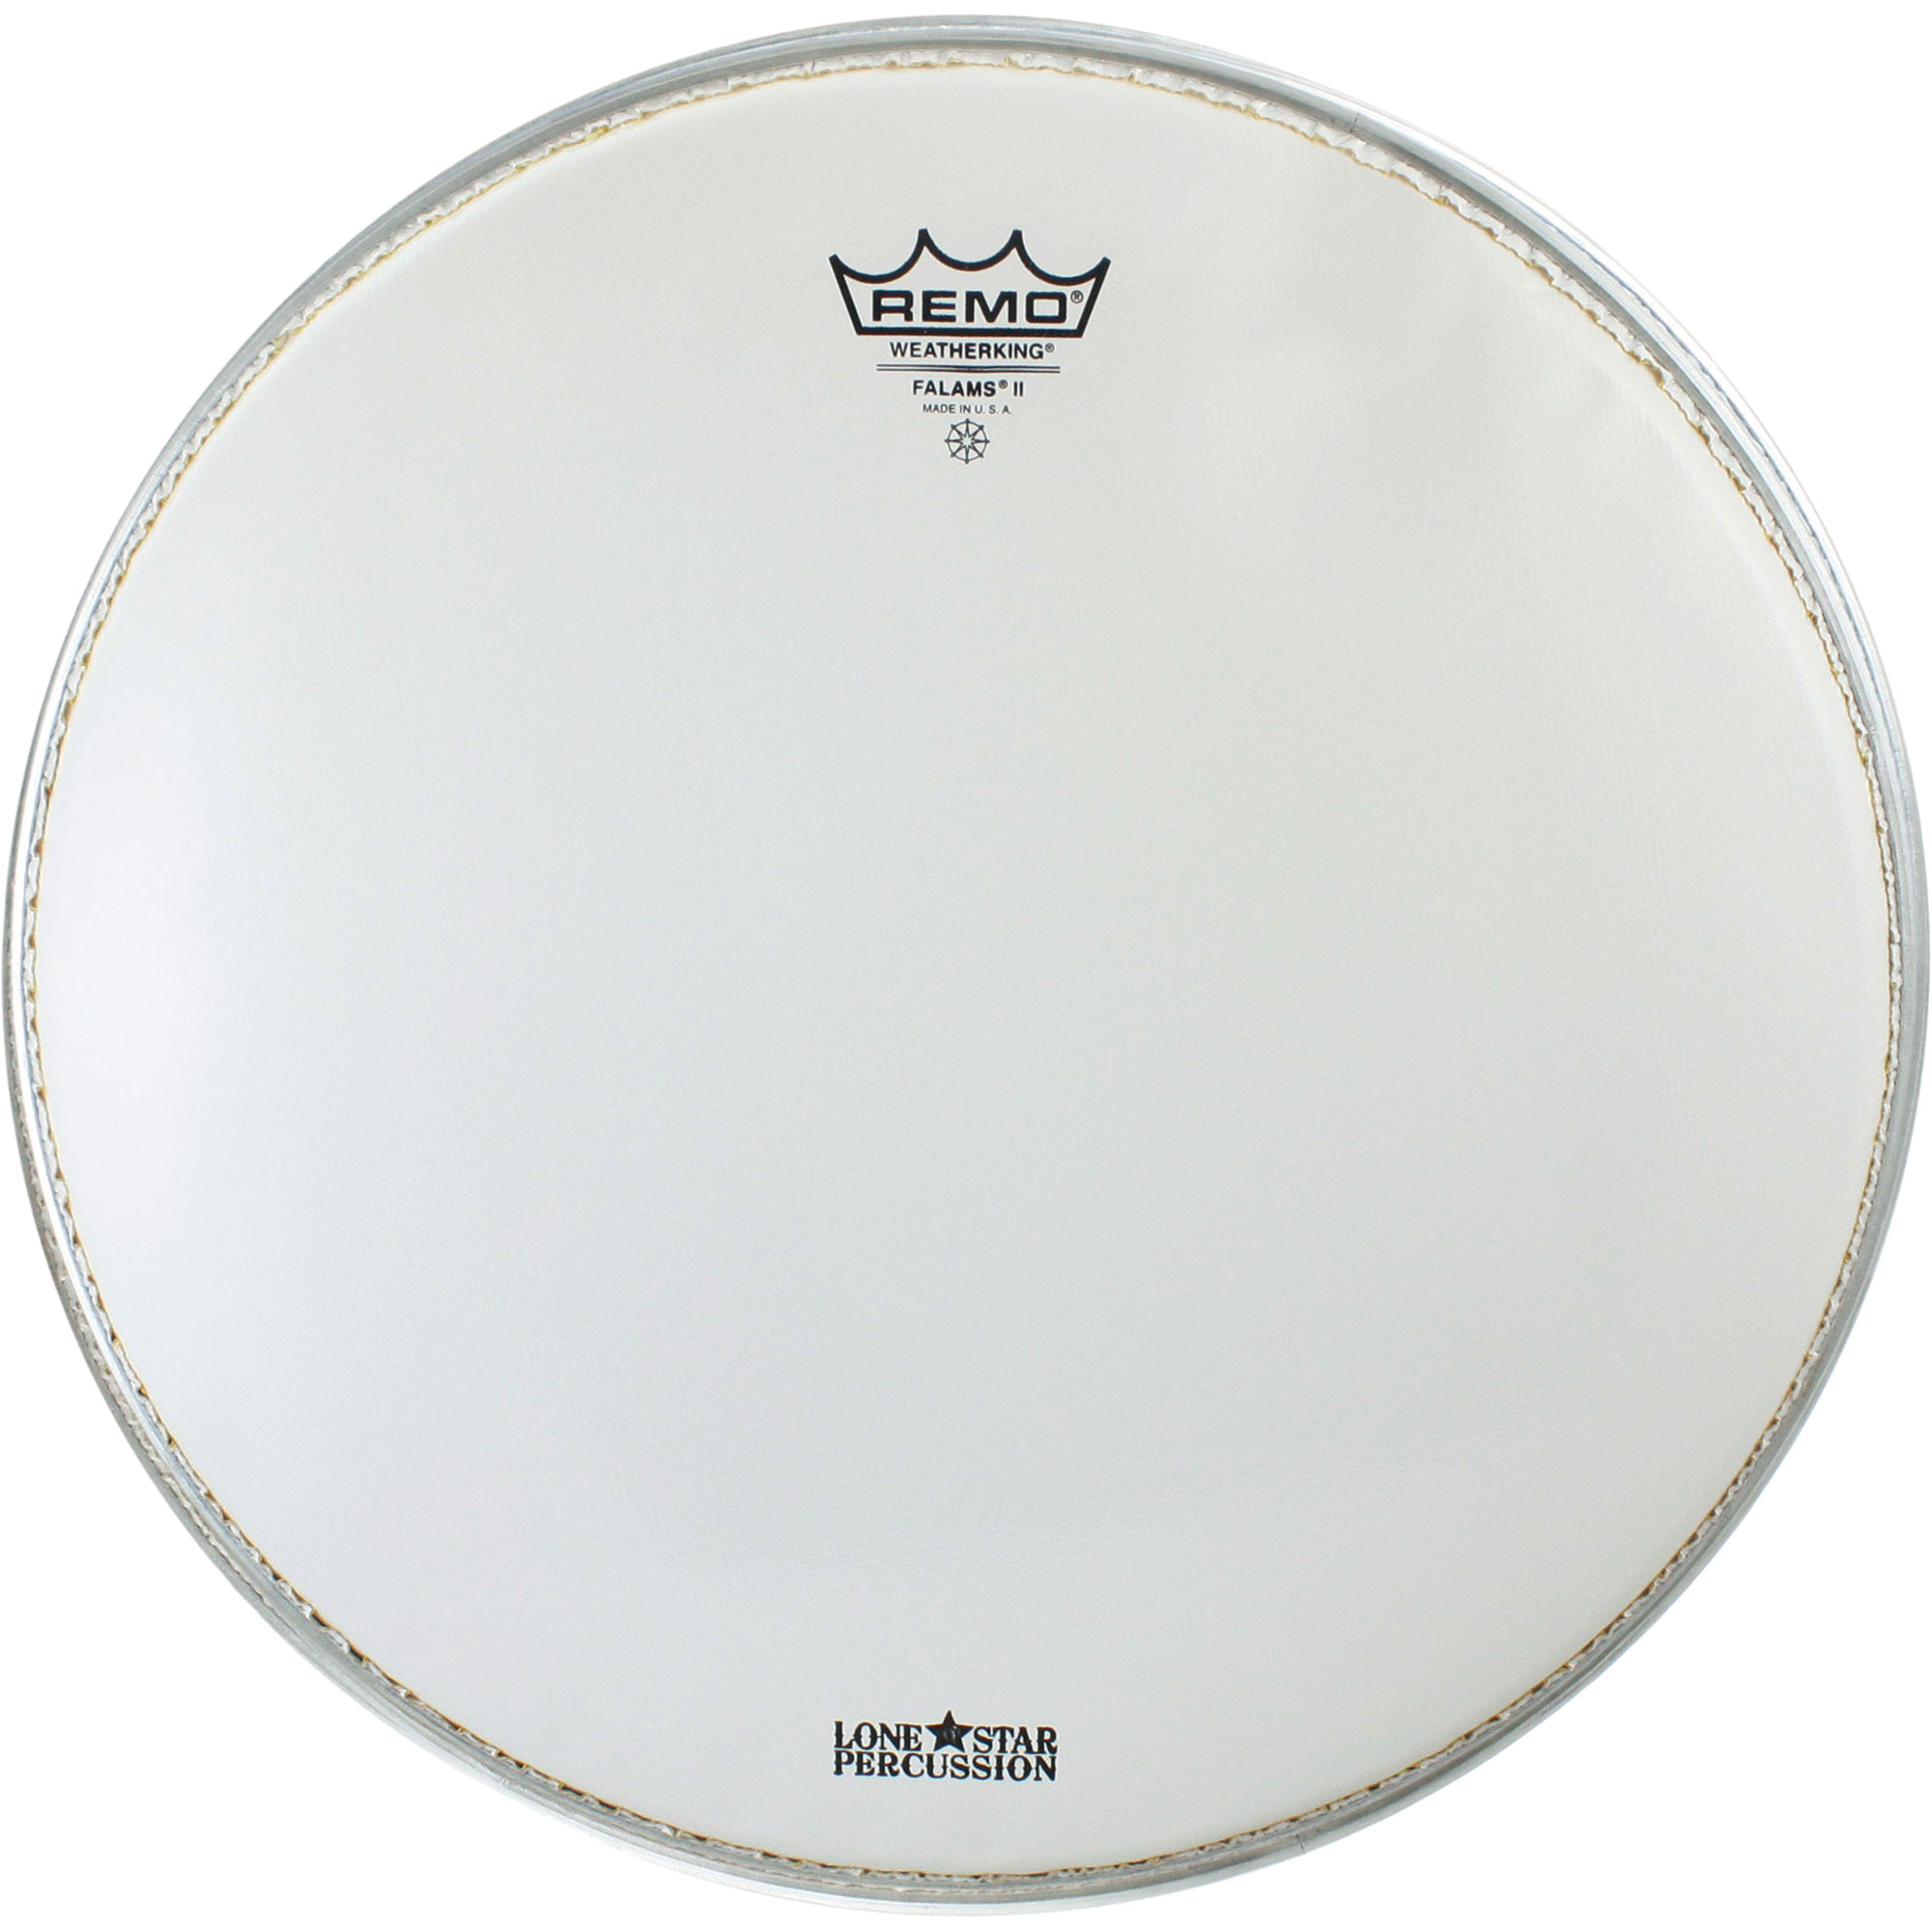 Kevlar Drum Head Snare : remo 14 falams marching snare drum top batter head ks 0214 00 ~ Russianpoet.info Haus und Dekorationen